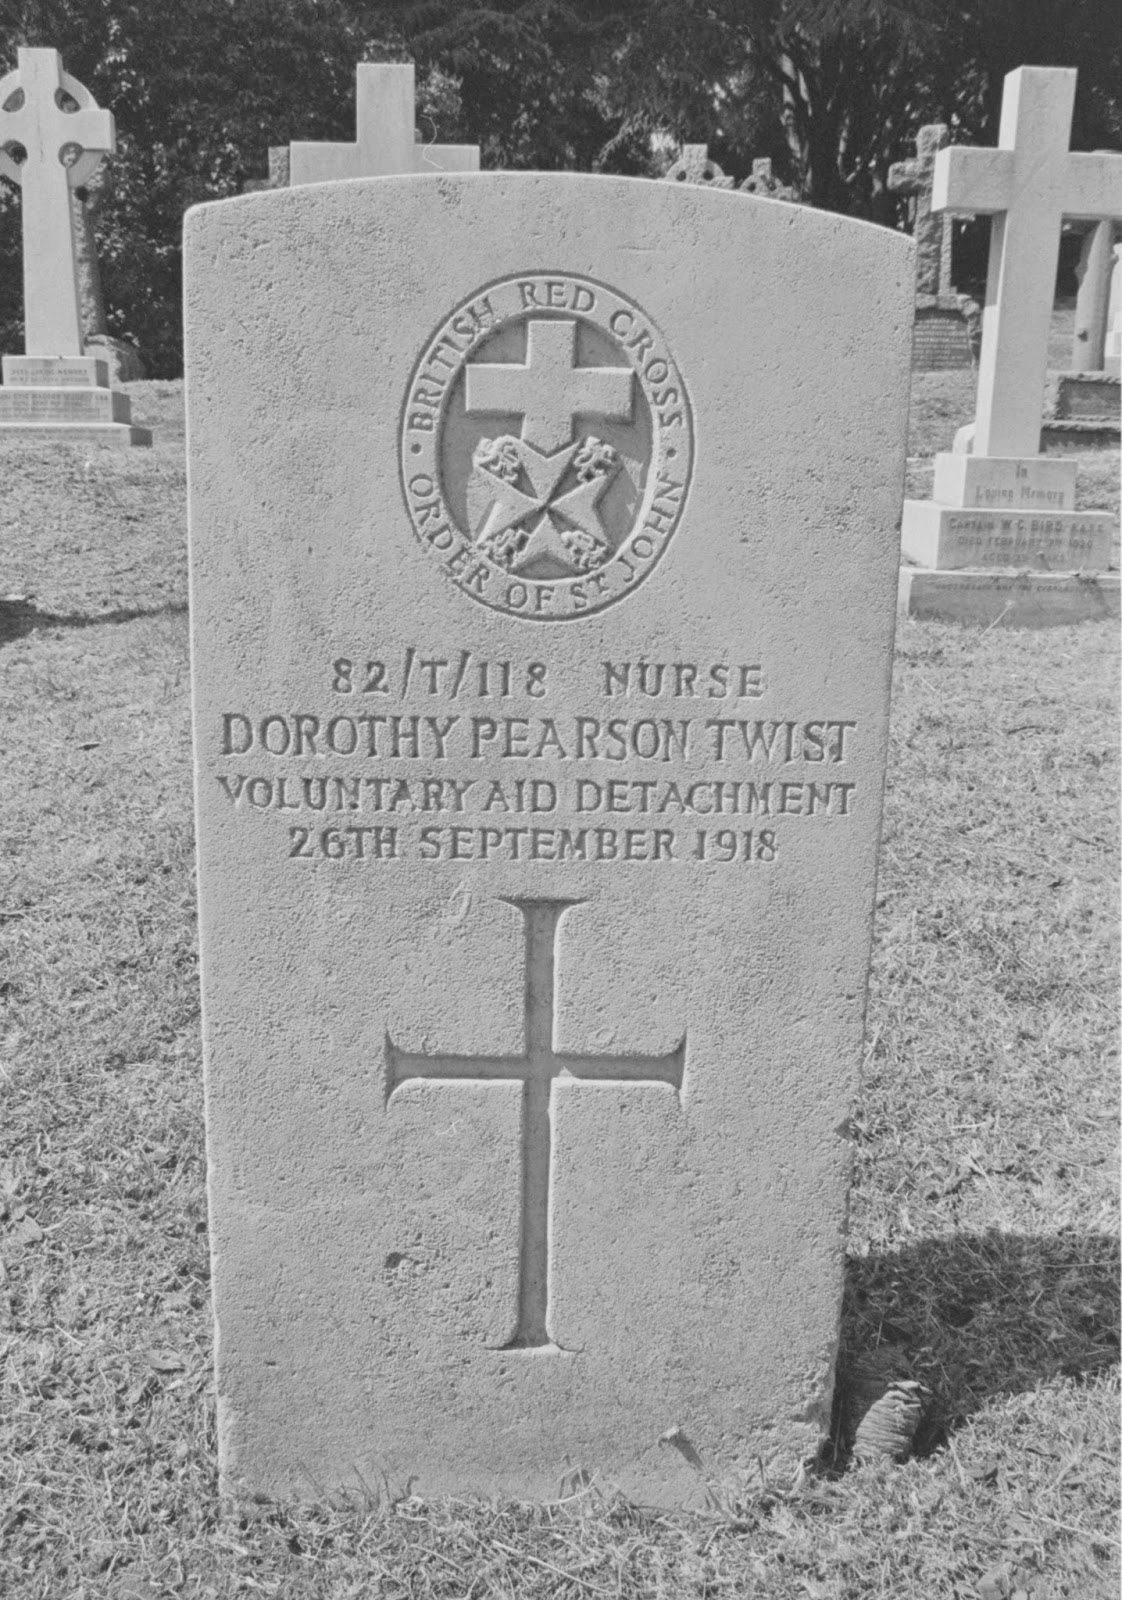 Grave Marker – Grave of Dorothy Pearson Twist VAD photographed in early 1990s. She died of influenza pneumonia and was buried with full military honours at Aldershot Military Cemetery.